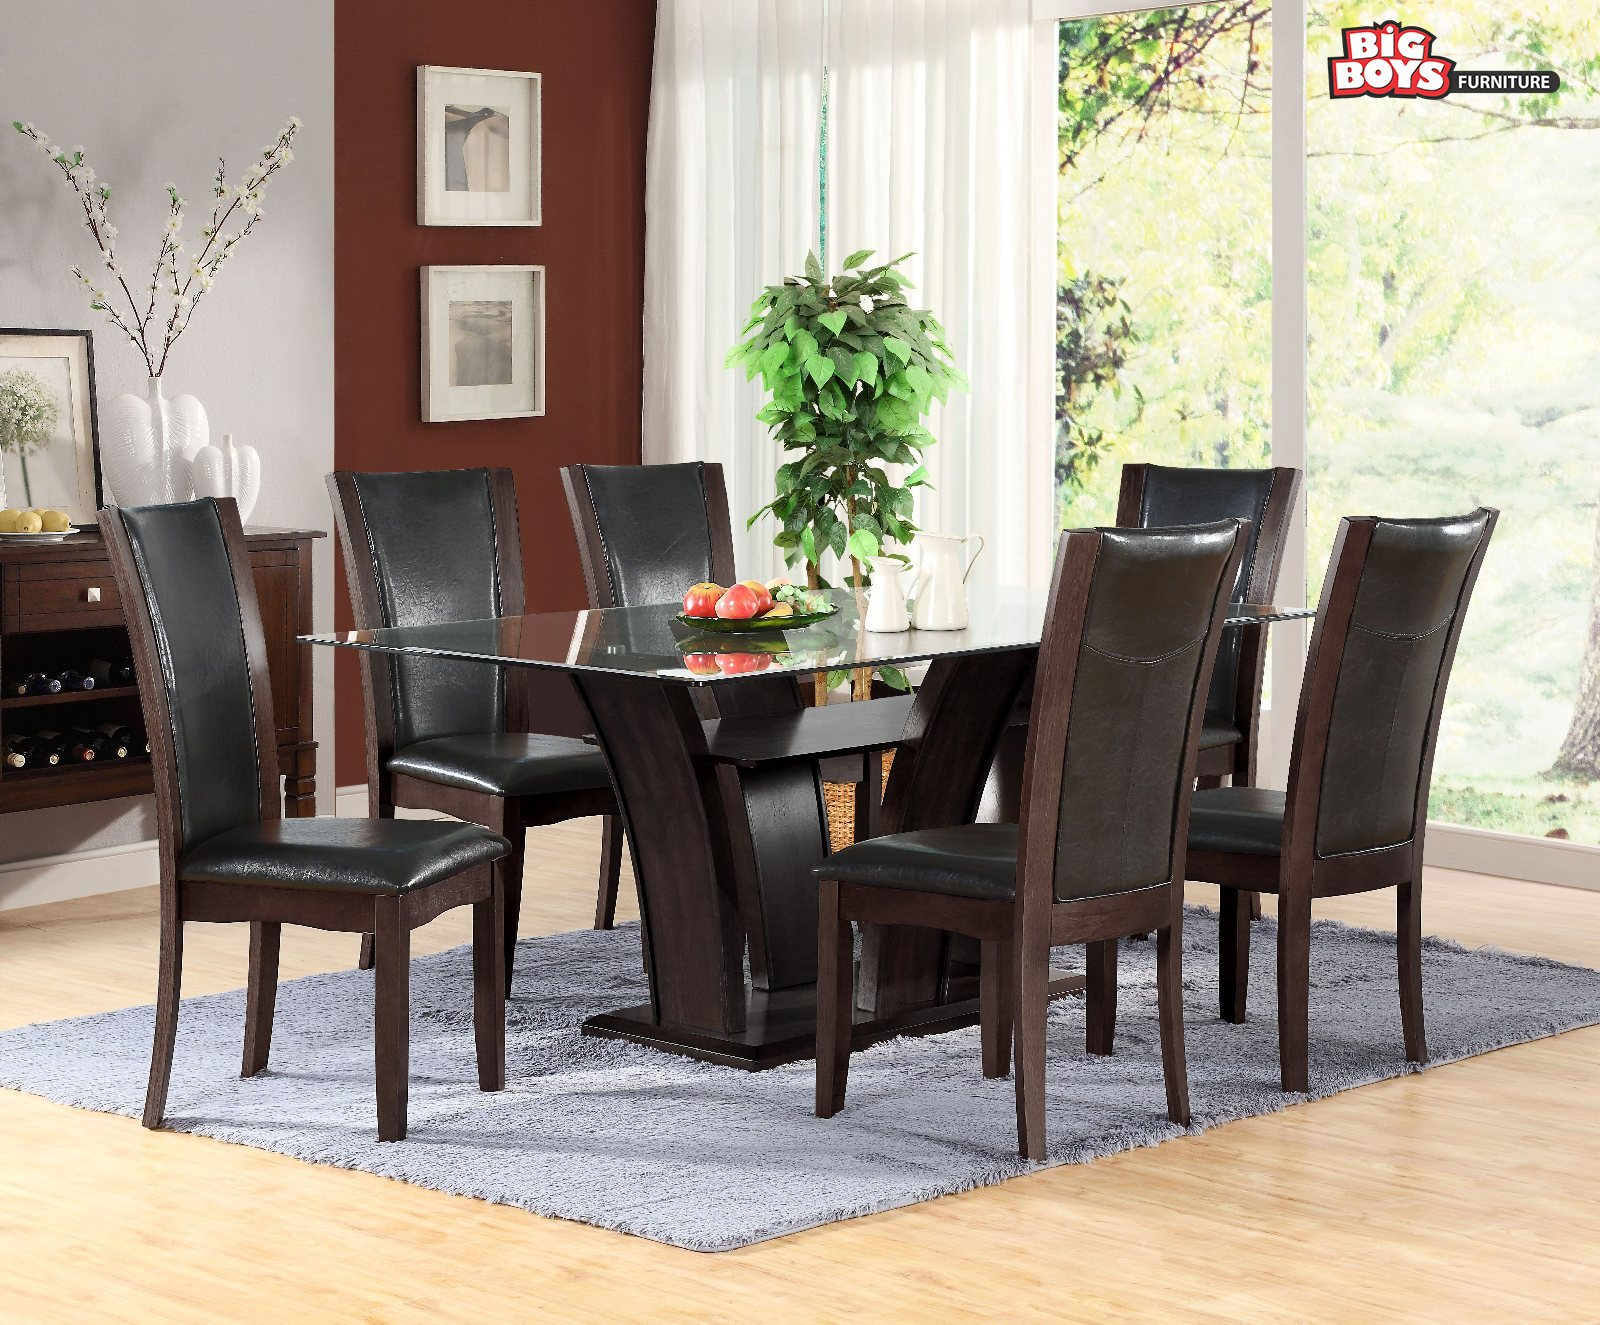 This set make your home more beautiful